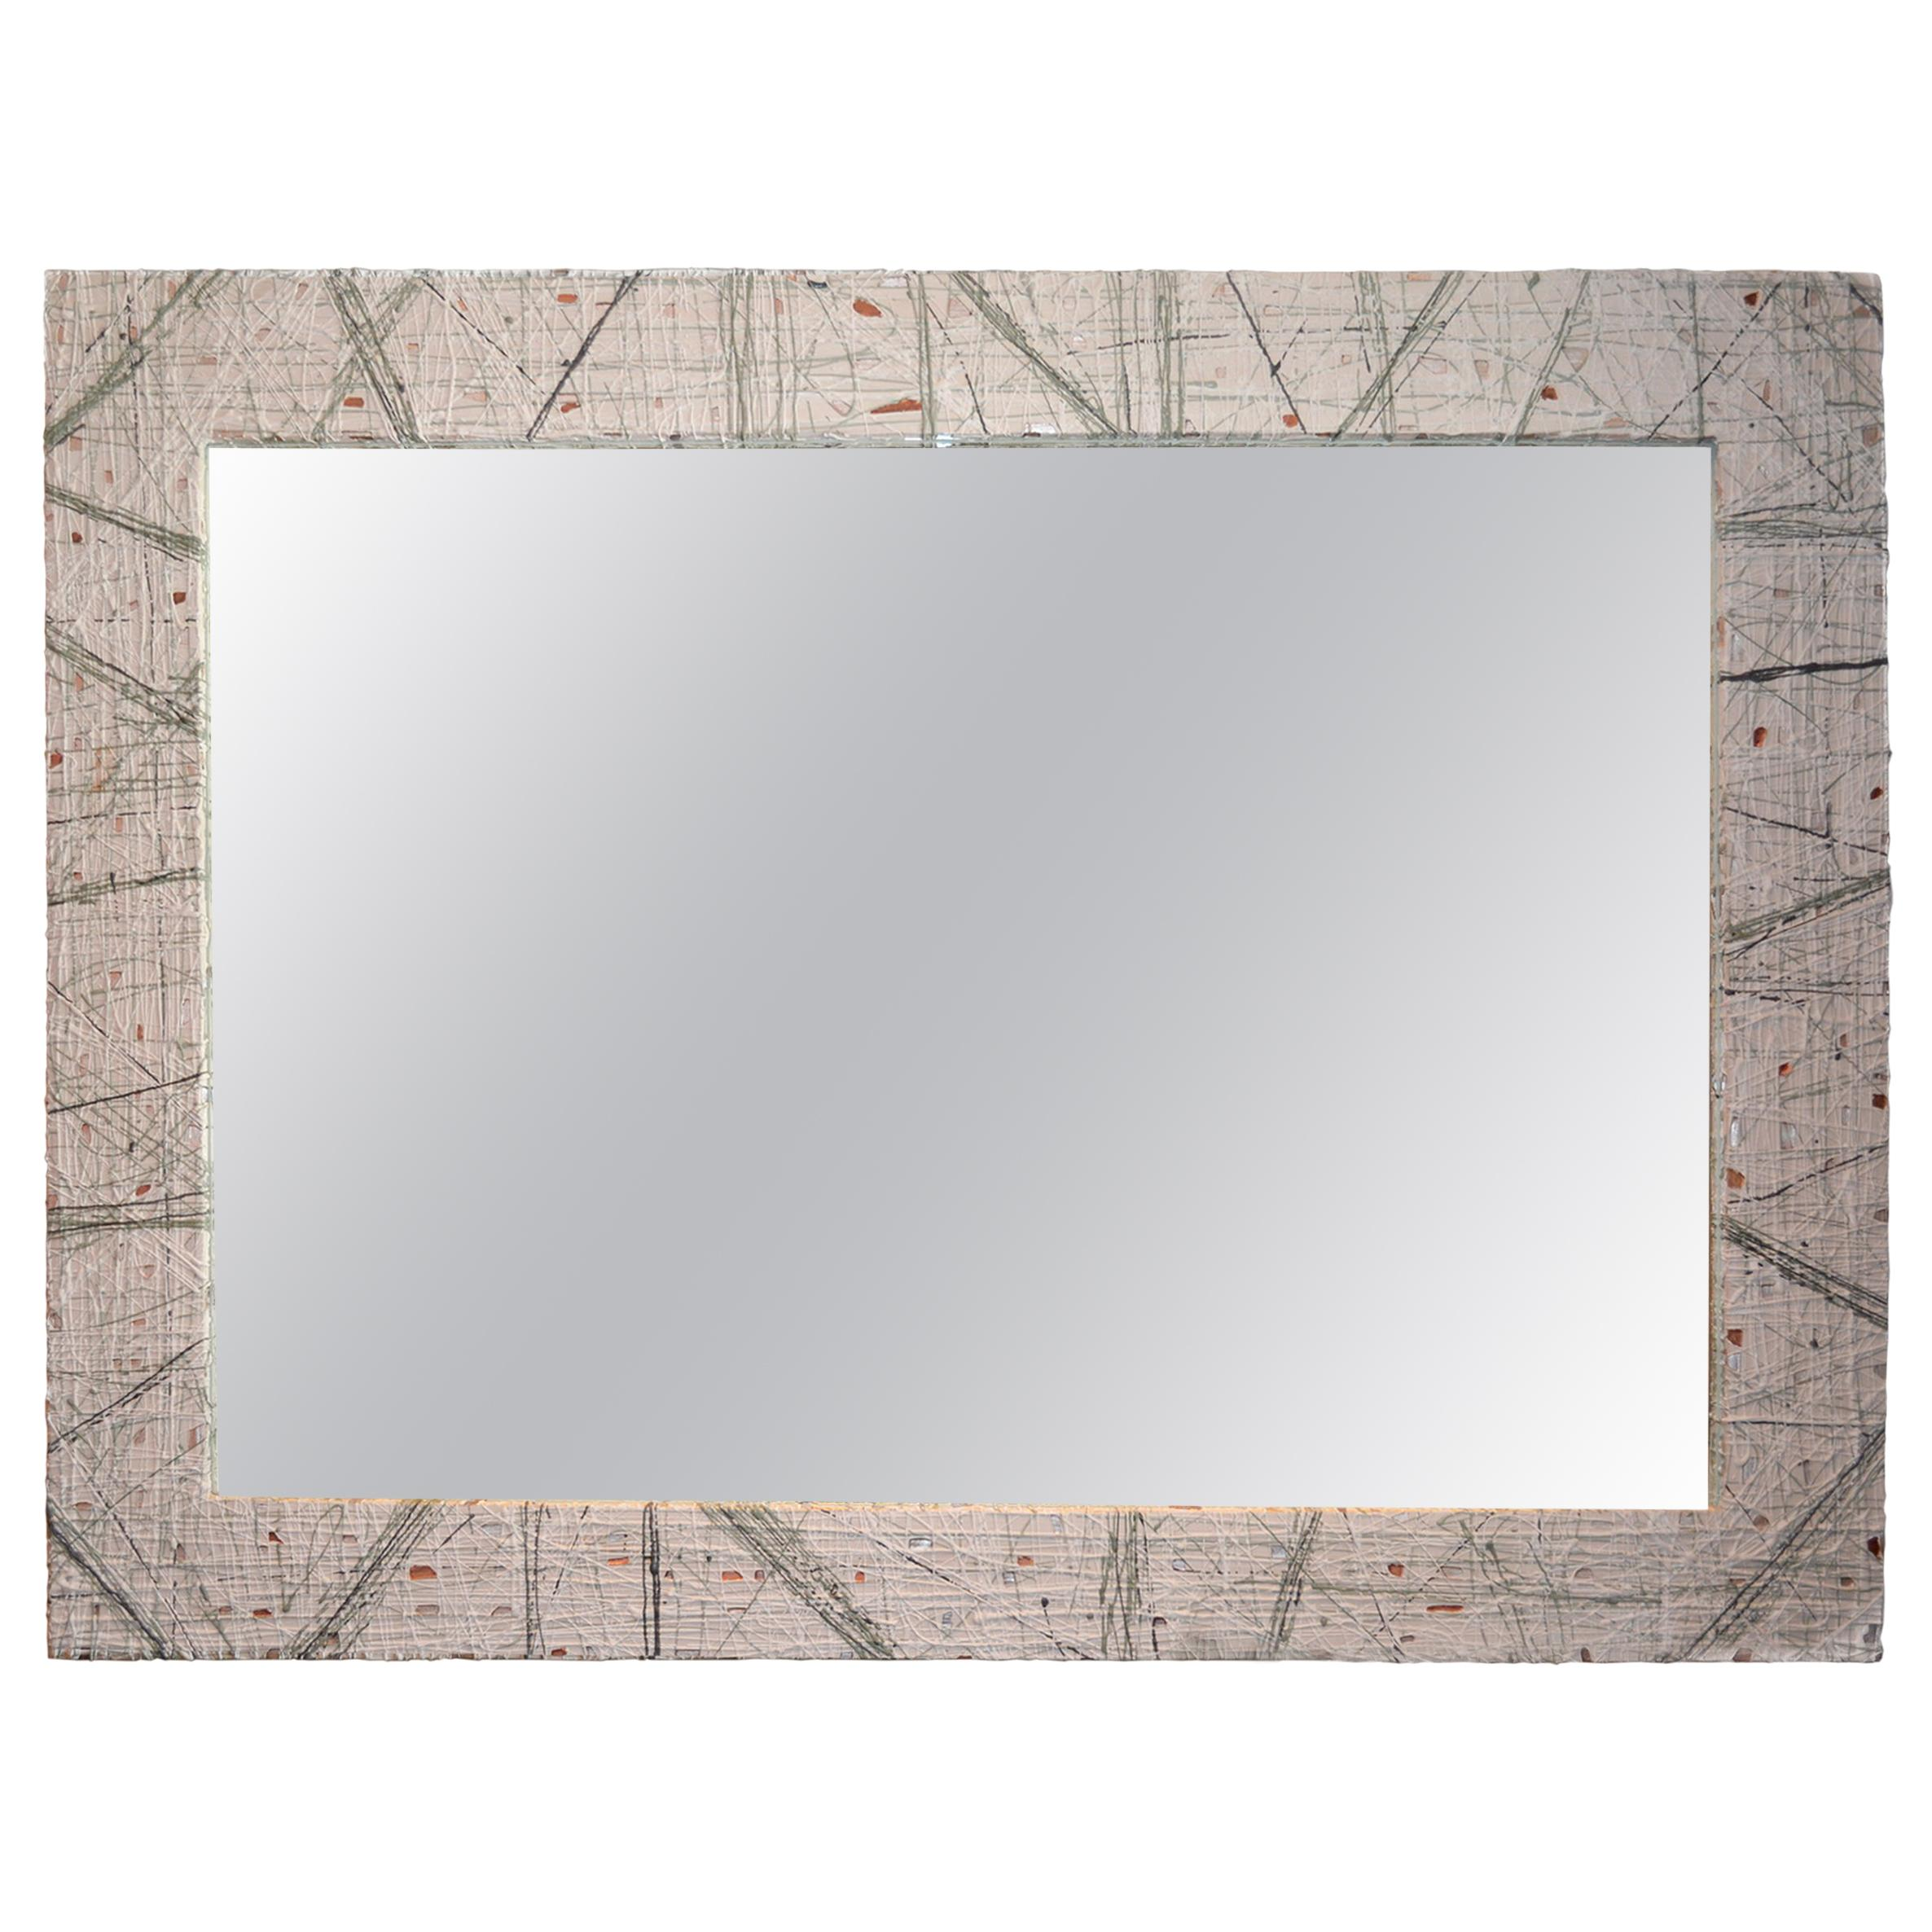 Modern Wall Mirror With Lacquered Brass Inlays And White Washed Wood Frame  For Sale At 1stdibs